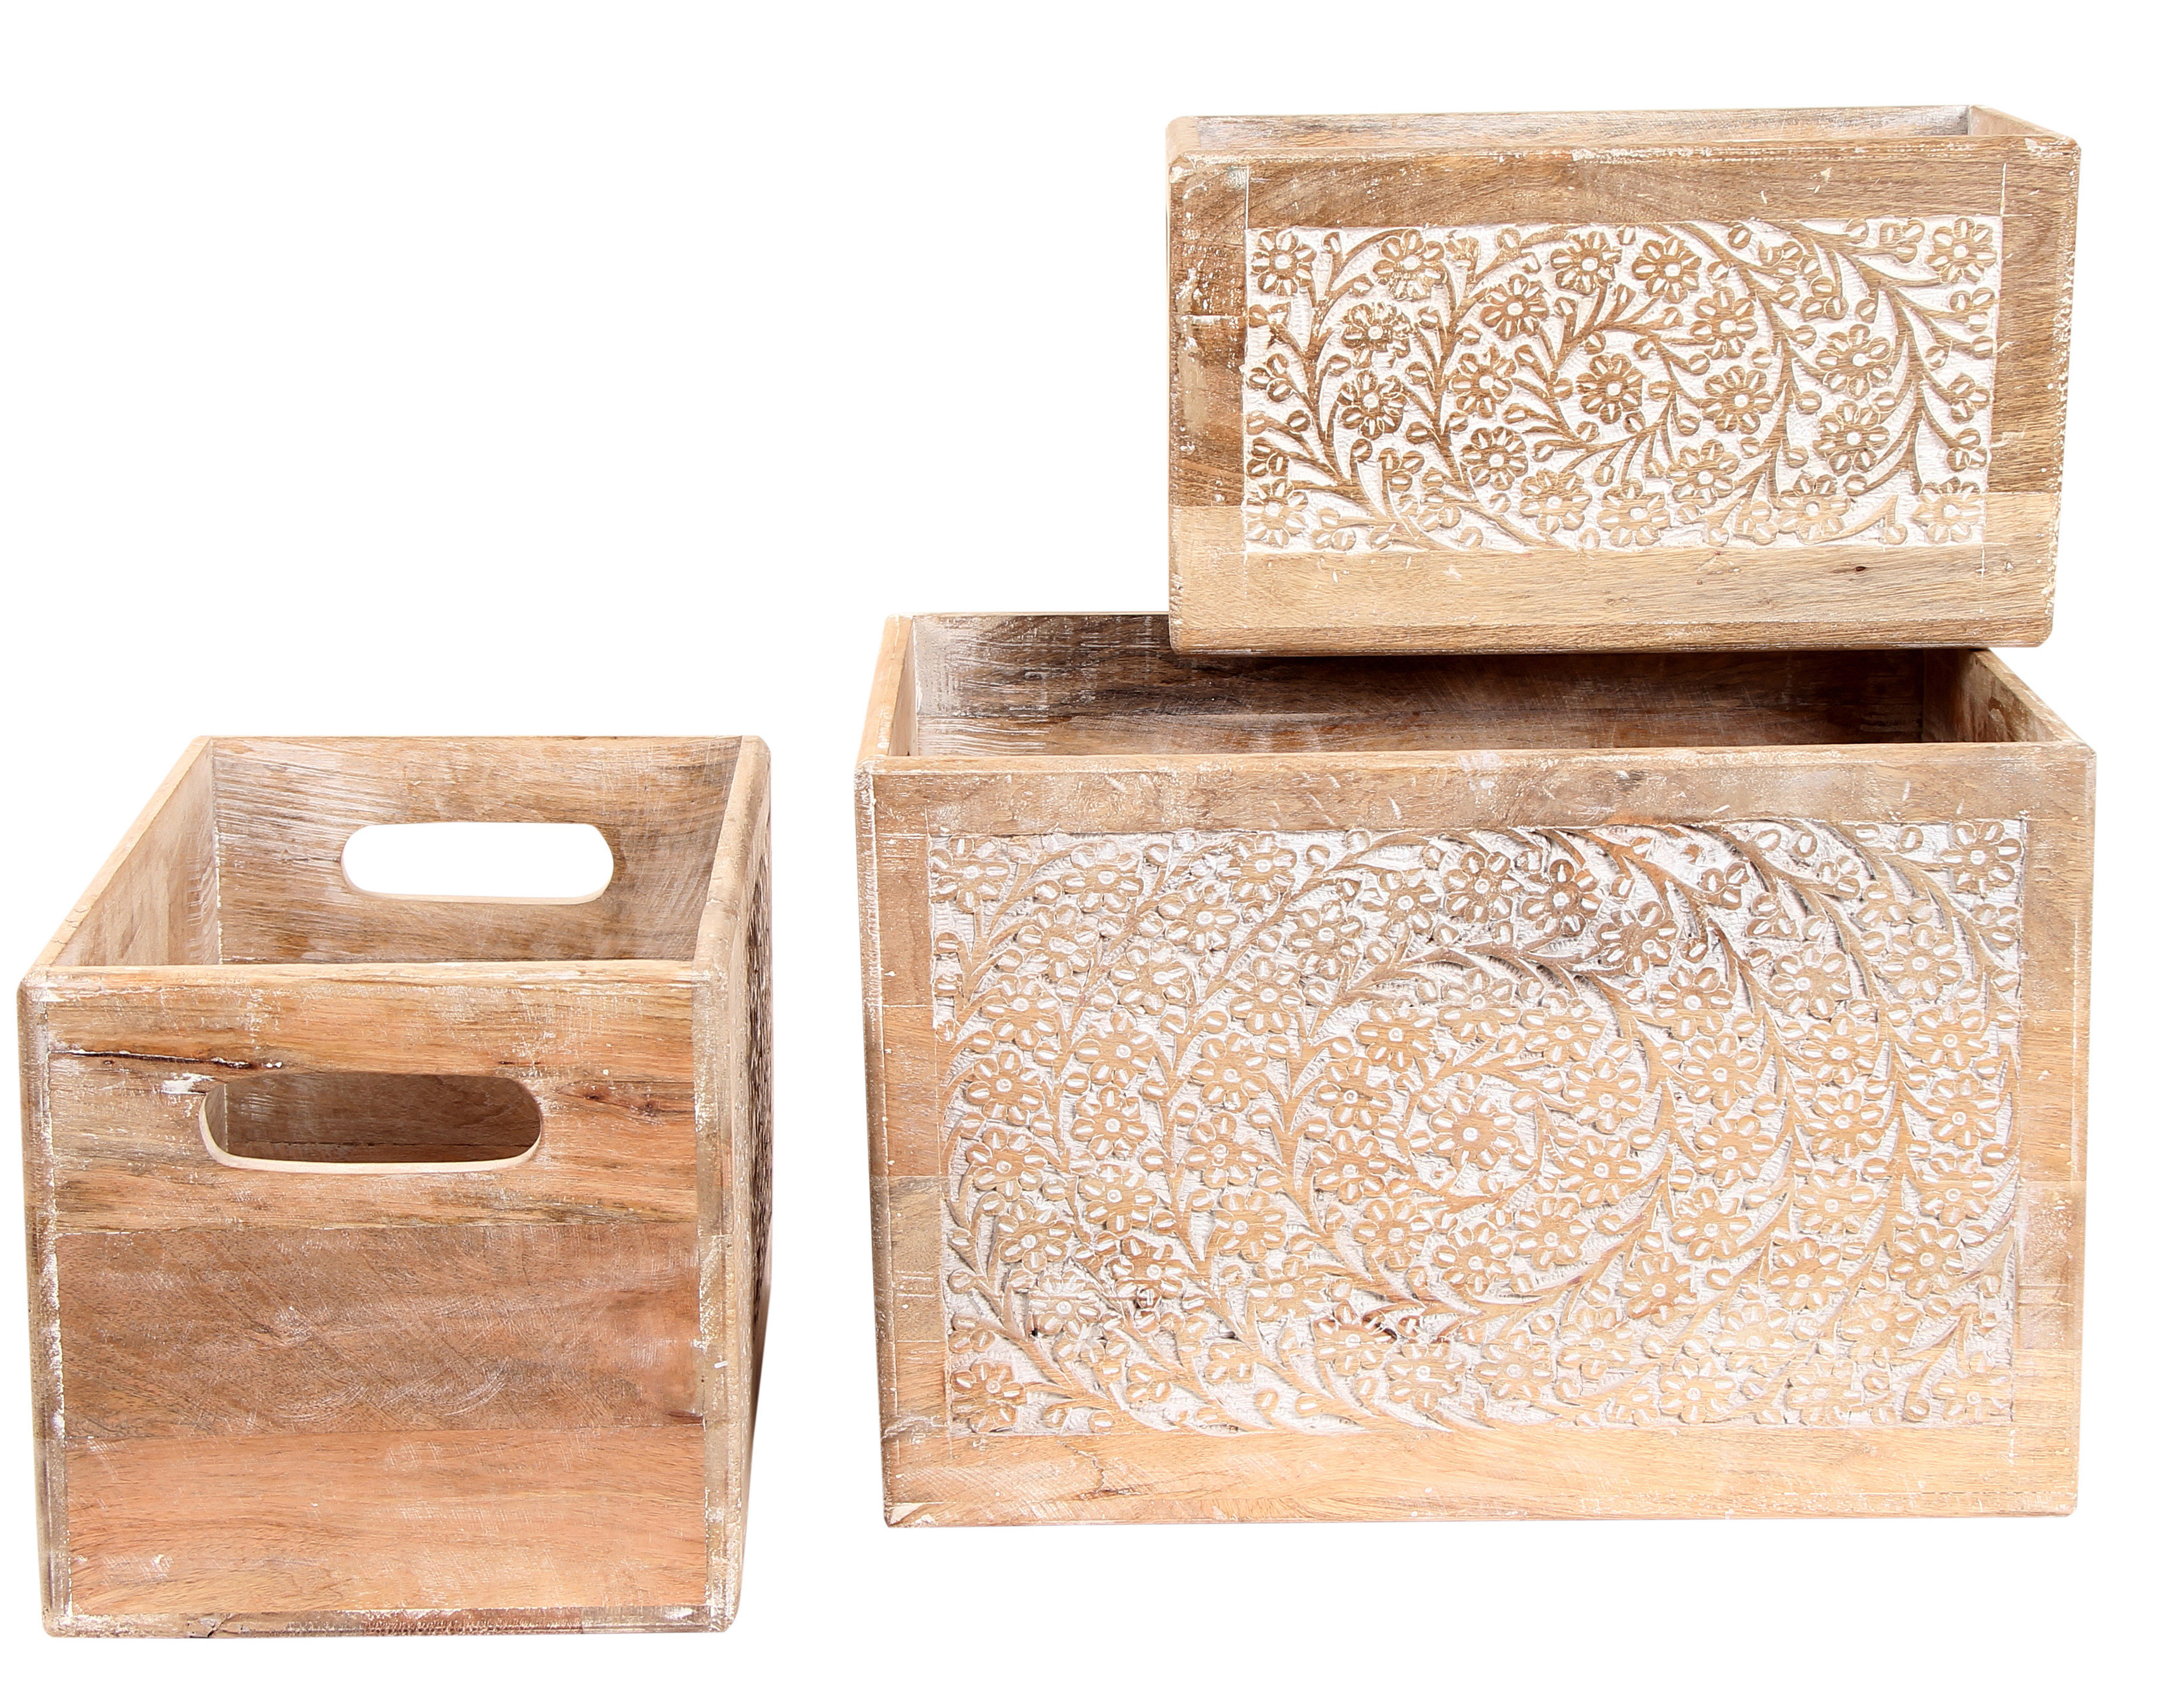 Bungalow Rose Distressed Solid Wood 3 Piece Decorative Crate Set Intended For Widely Used 4 Piece Handwoven Wheel Wall Decor Sets (Gallery 17 of 20)